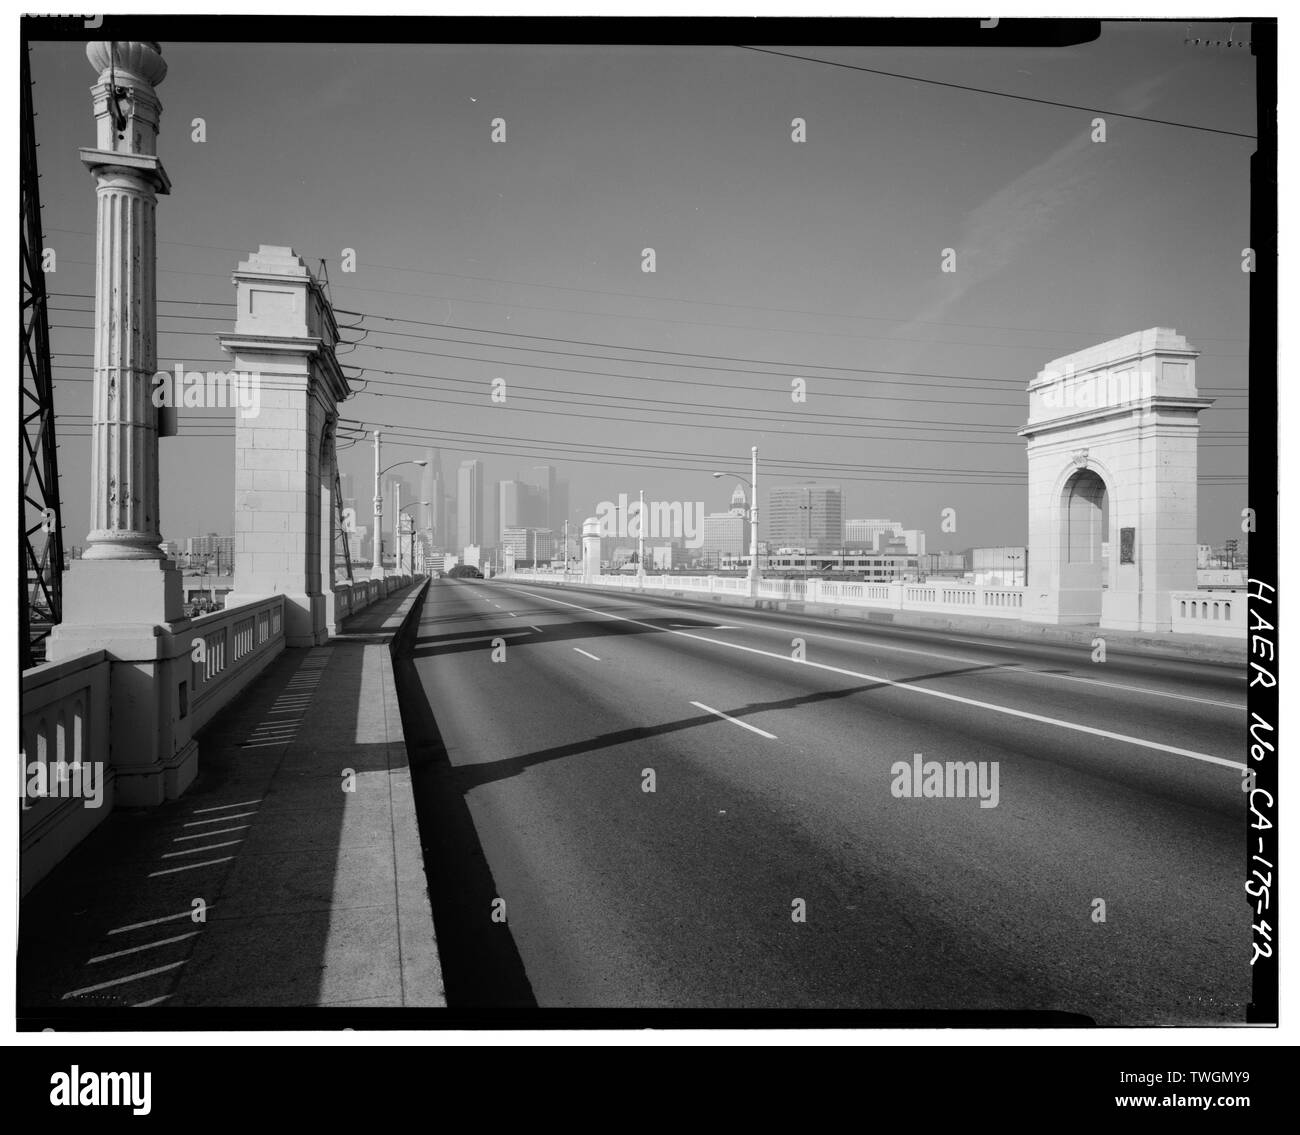 ROAD BED OVER-ALL VIEW, FACING WEST. - First Street Bridge, Spanning Los Angeles River at First Street, Los Angeles, Los Angeles County, CA Stock Photo